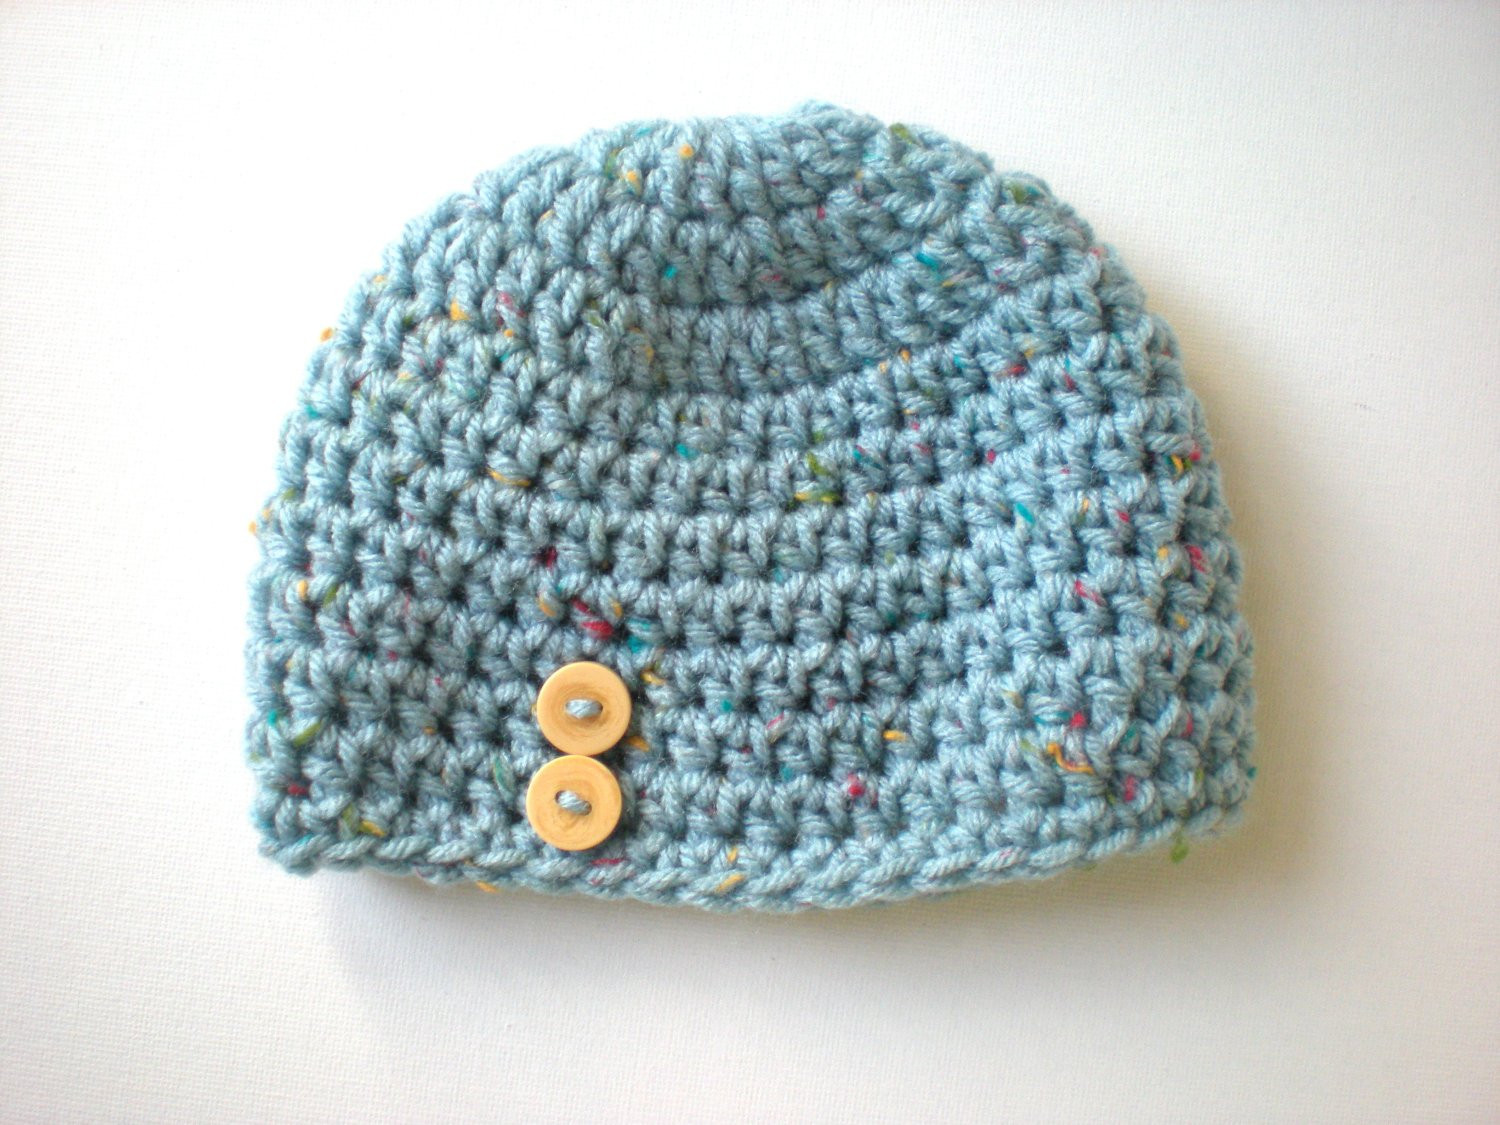 Beautiful Pattern Basic Beanie Easy Crochet Pdf Instant Download Easy Crochet Beanie Pattern Of Awesome A Variety Of Free Crochet Hat Patterns for Making Hats Easy Crochet Beanie Pattern